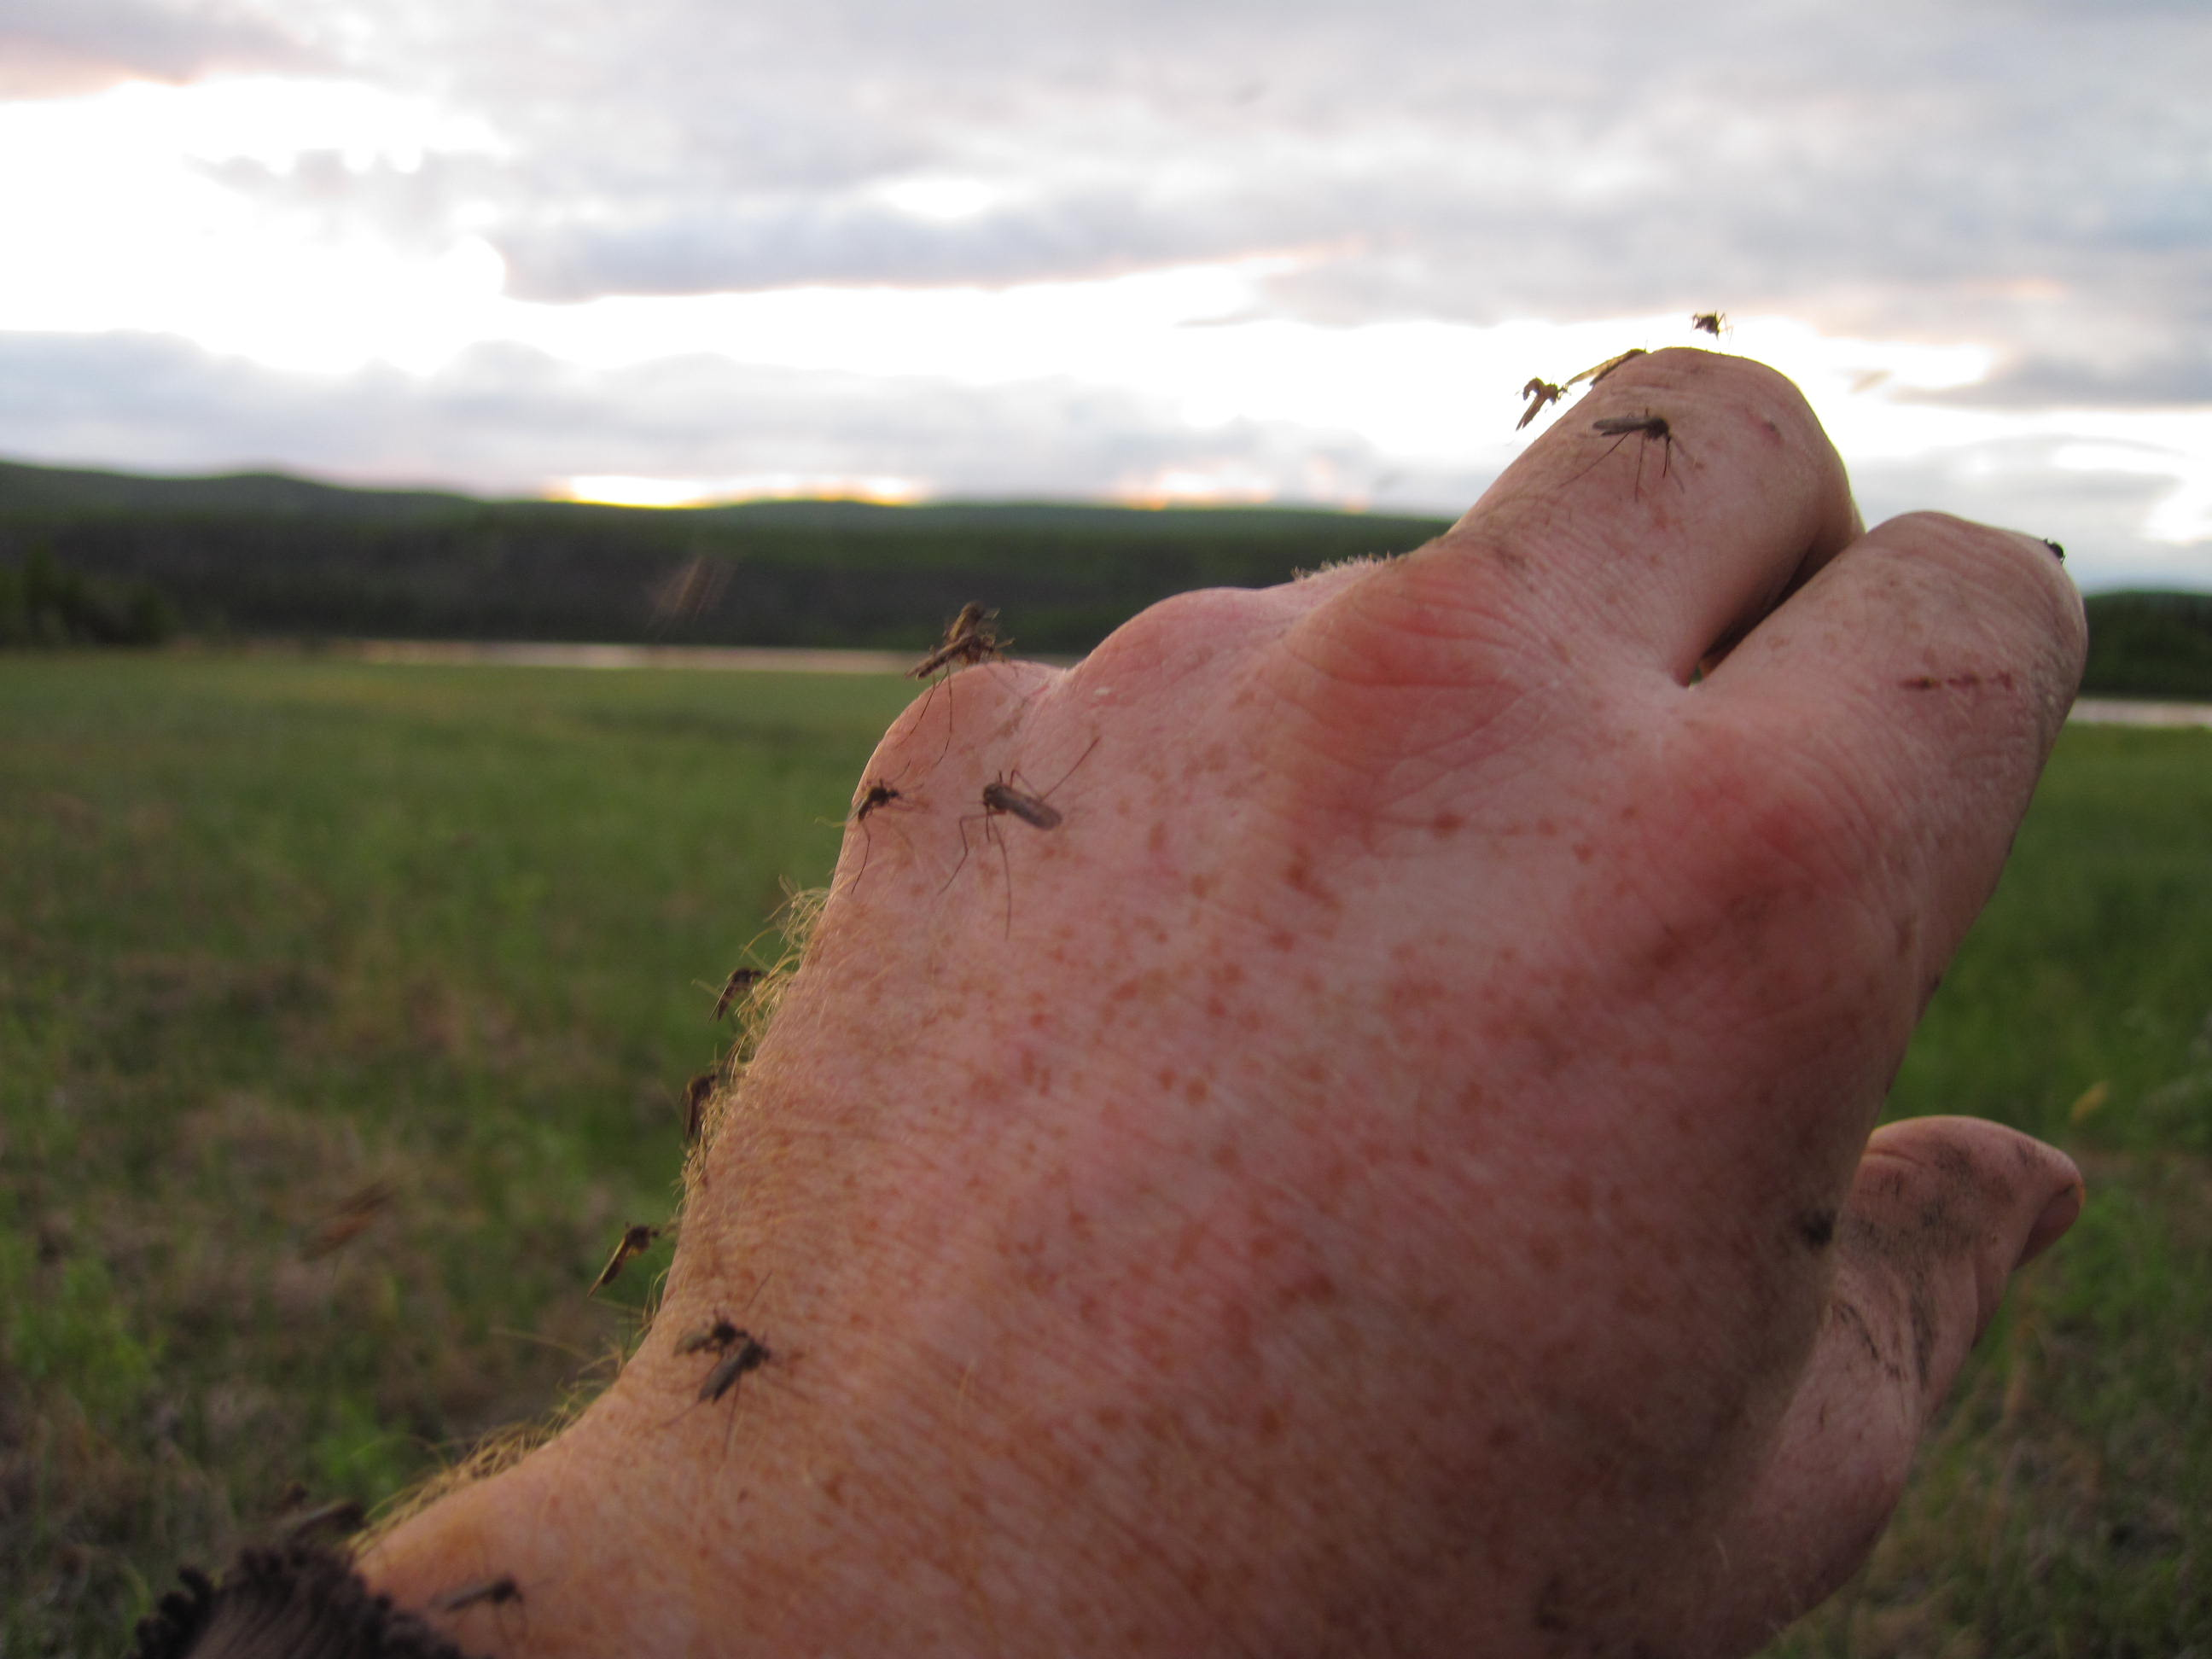 Dances With Mosquitoes The Practical Primitivist